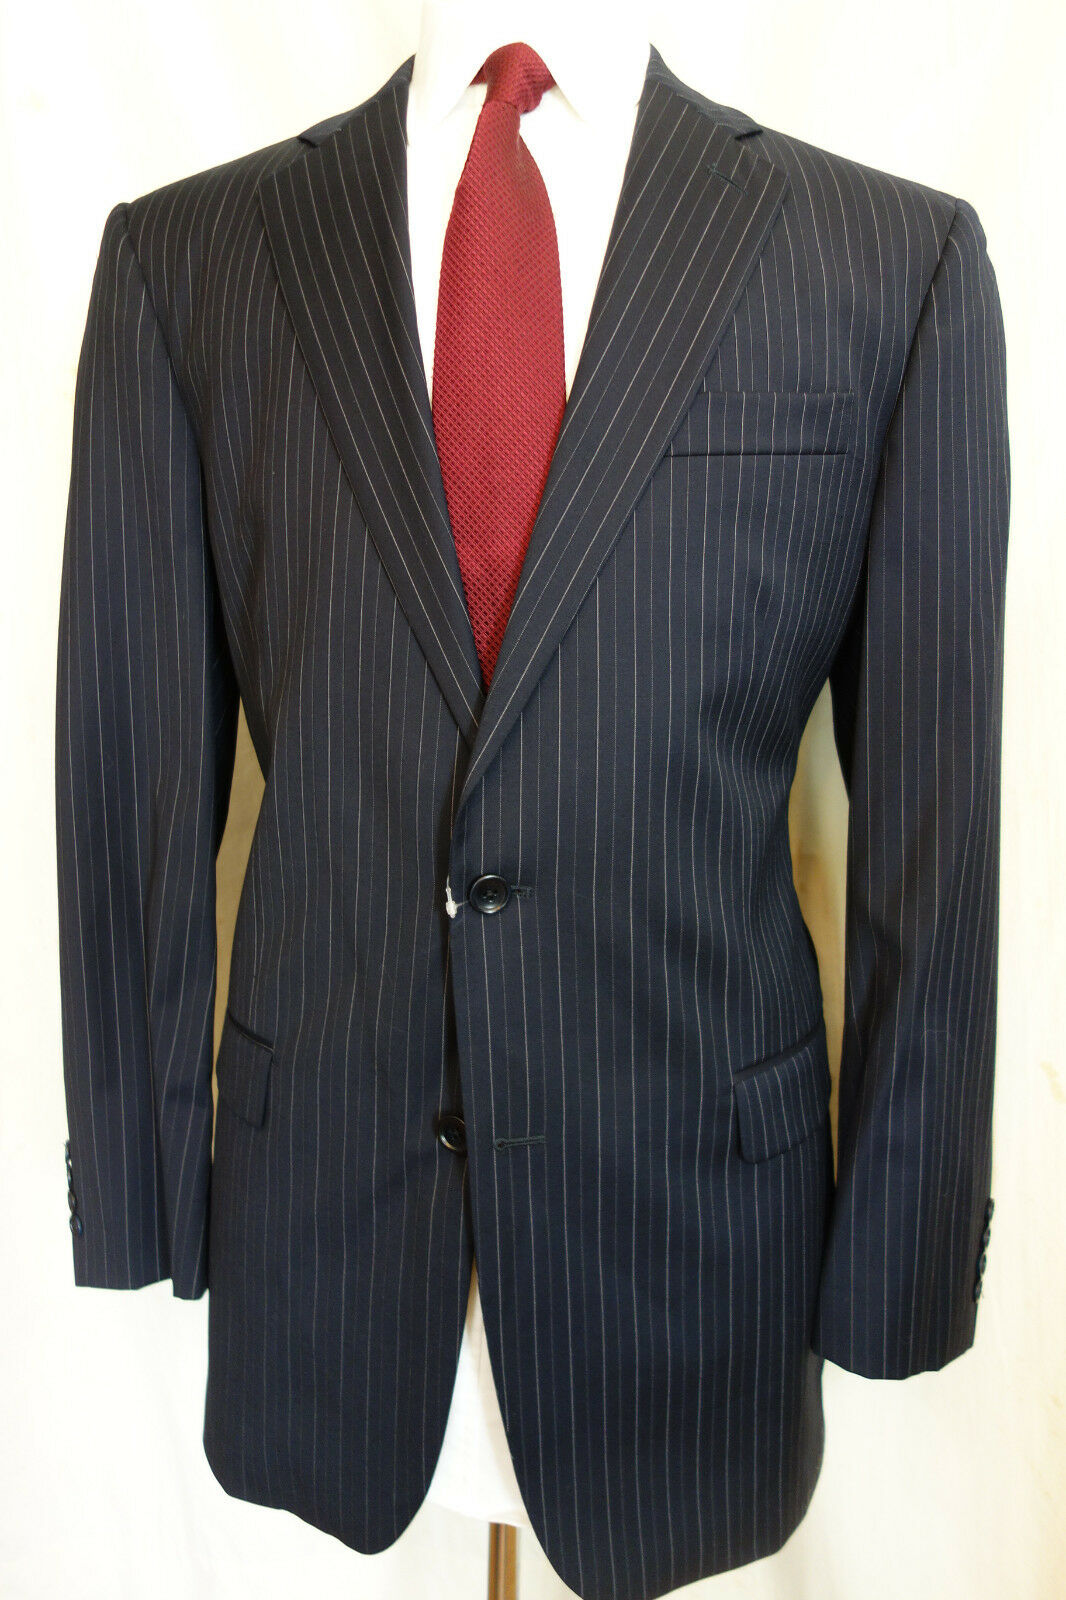 NWOT Brooks Brothers 1818 Madison Navy Pinstripe Saxxon Wool Suit 42L MSRP 1098